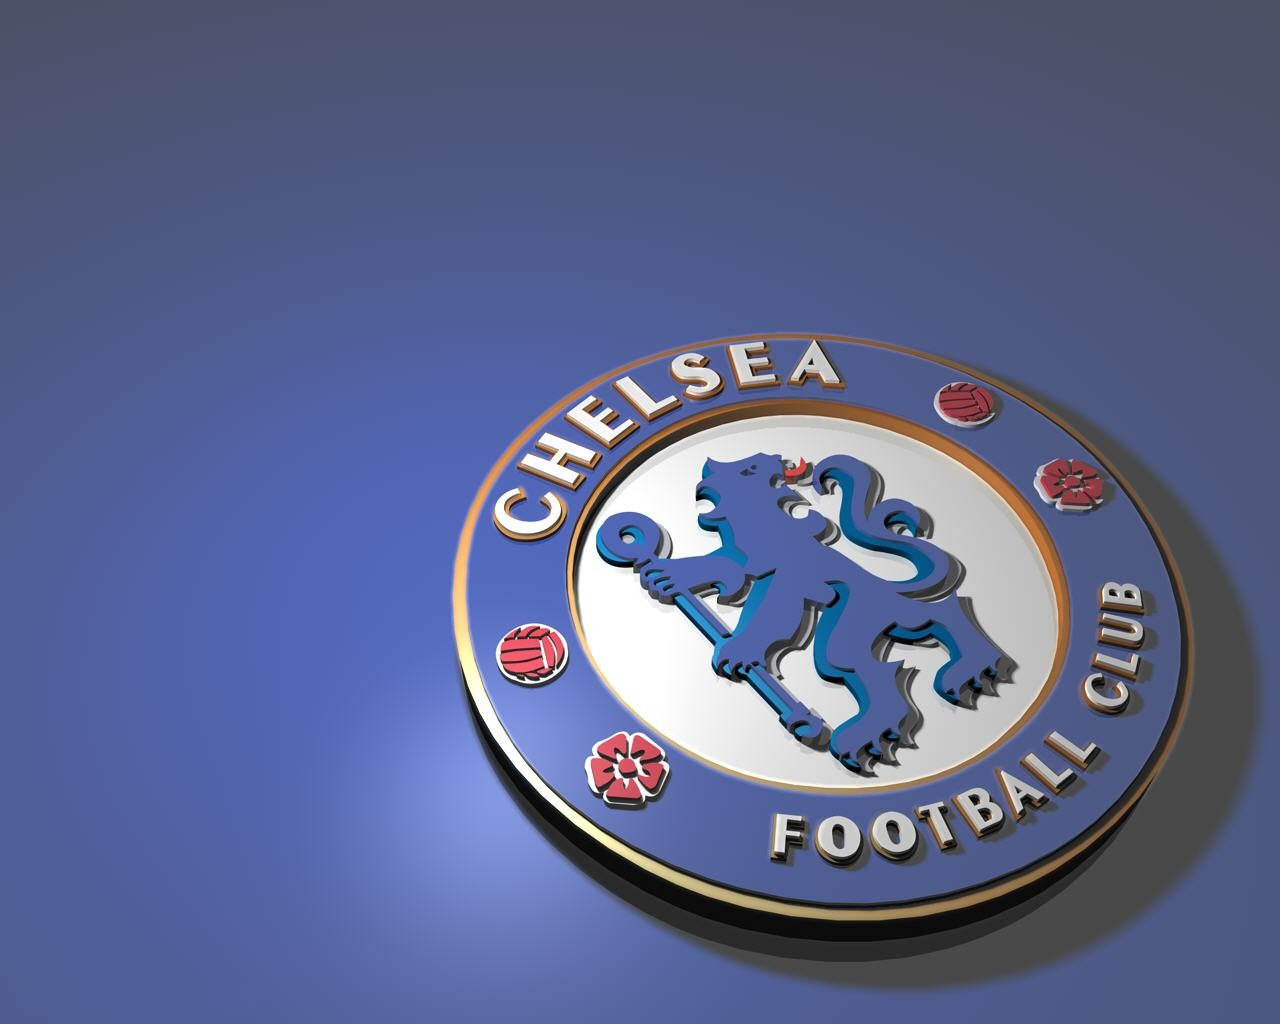 Chelsea FC Logo HD wallpaper